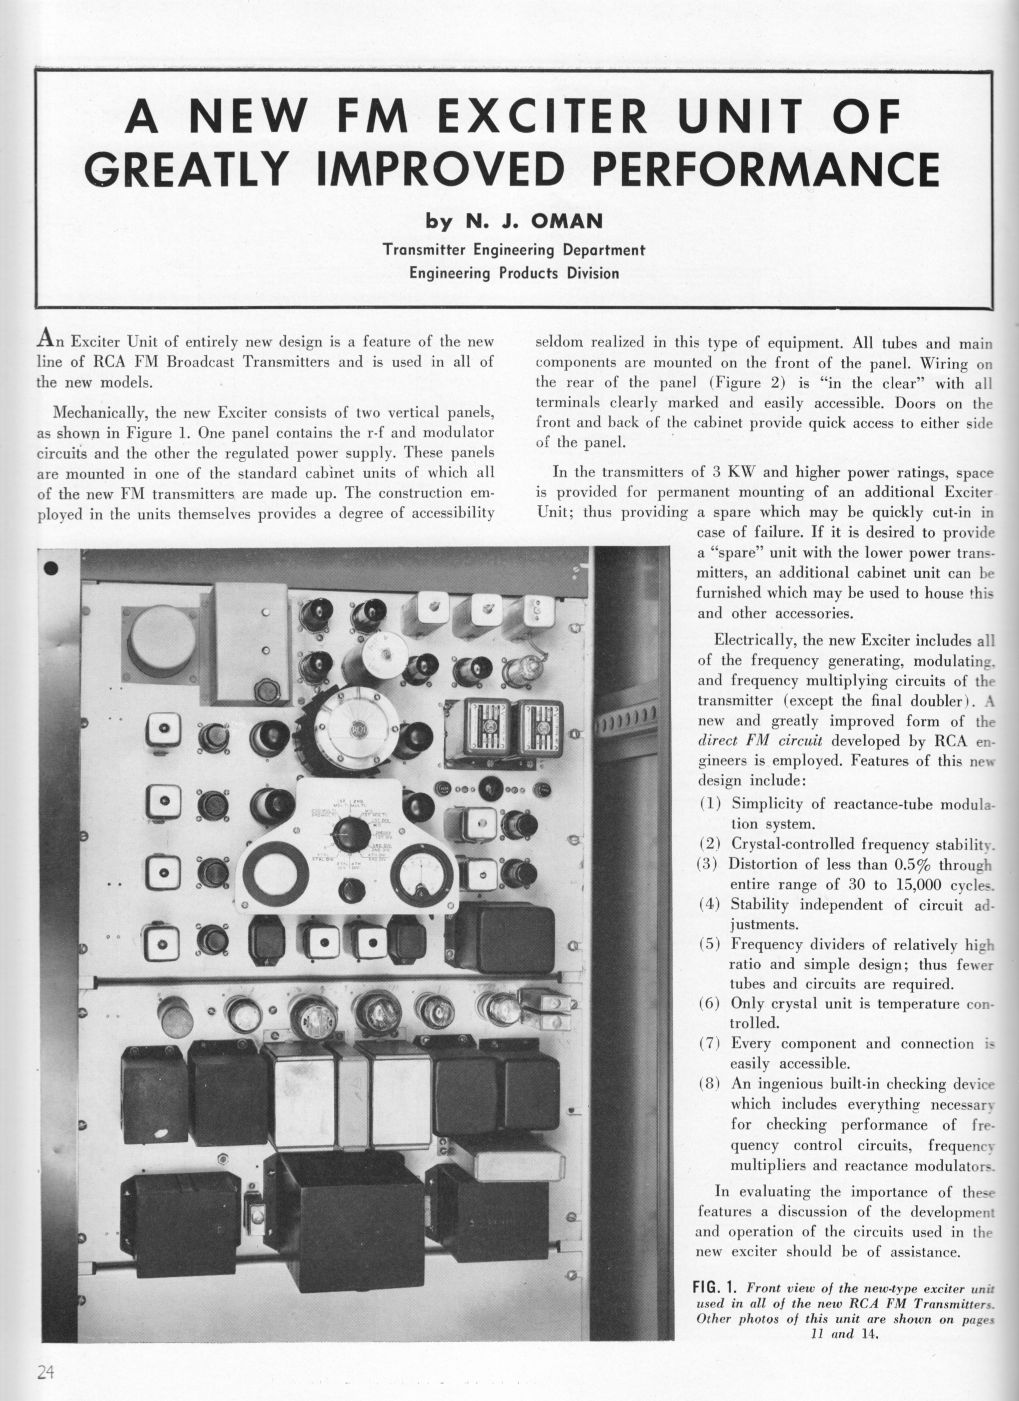 RCA MI-7015 Direct FM Exciter, page 1